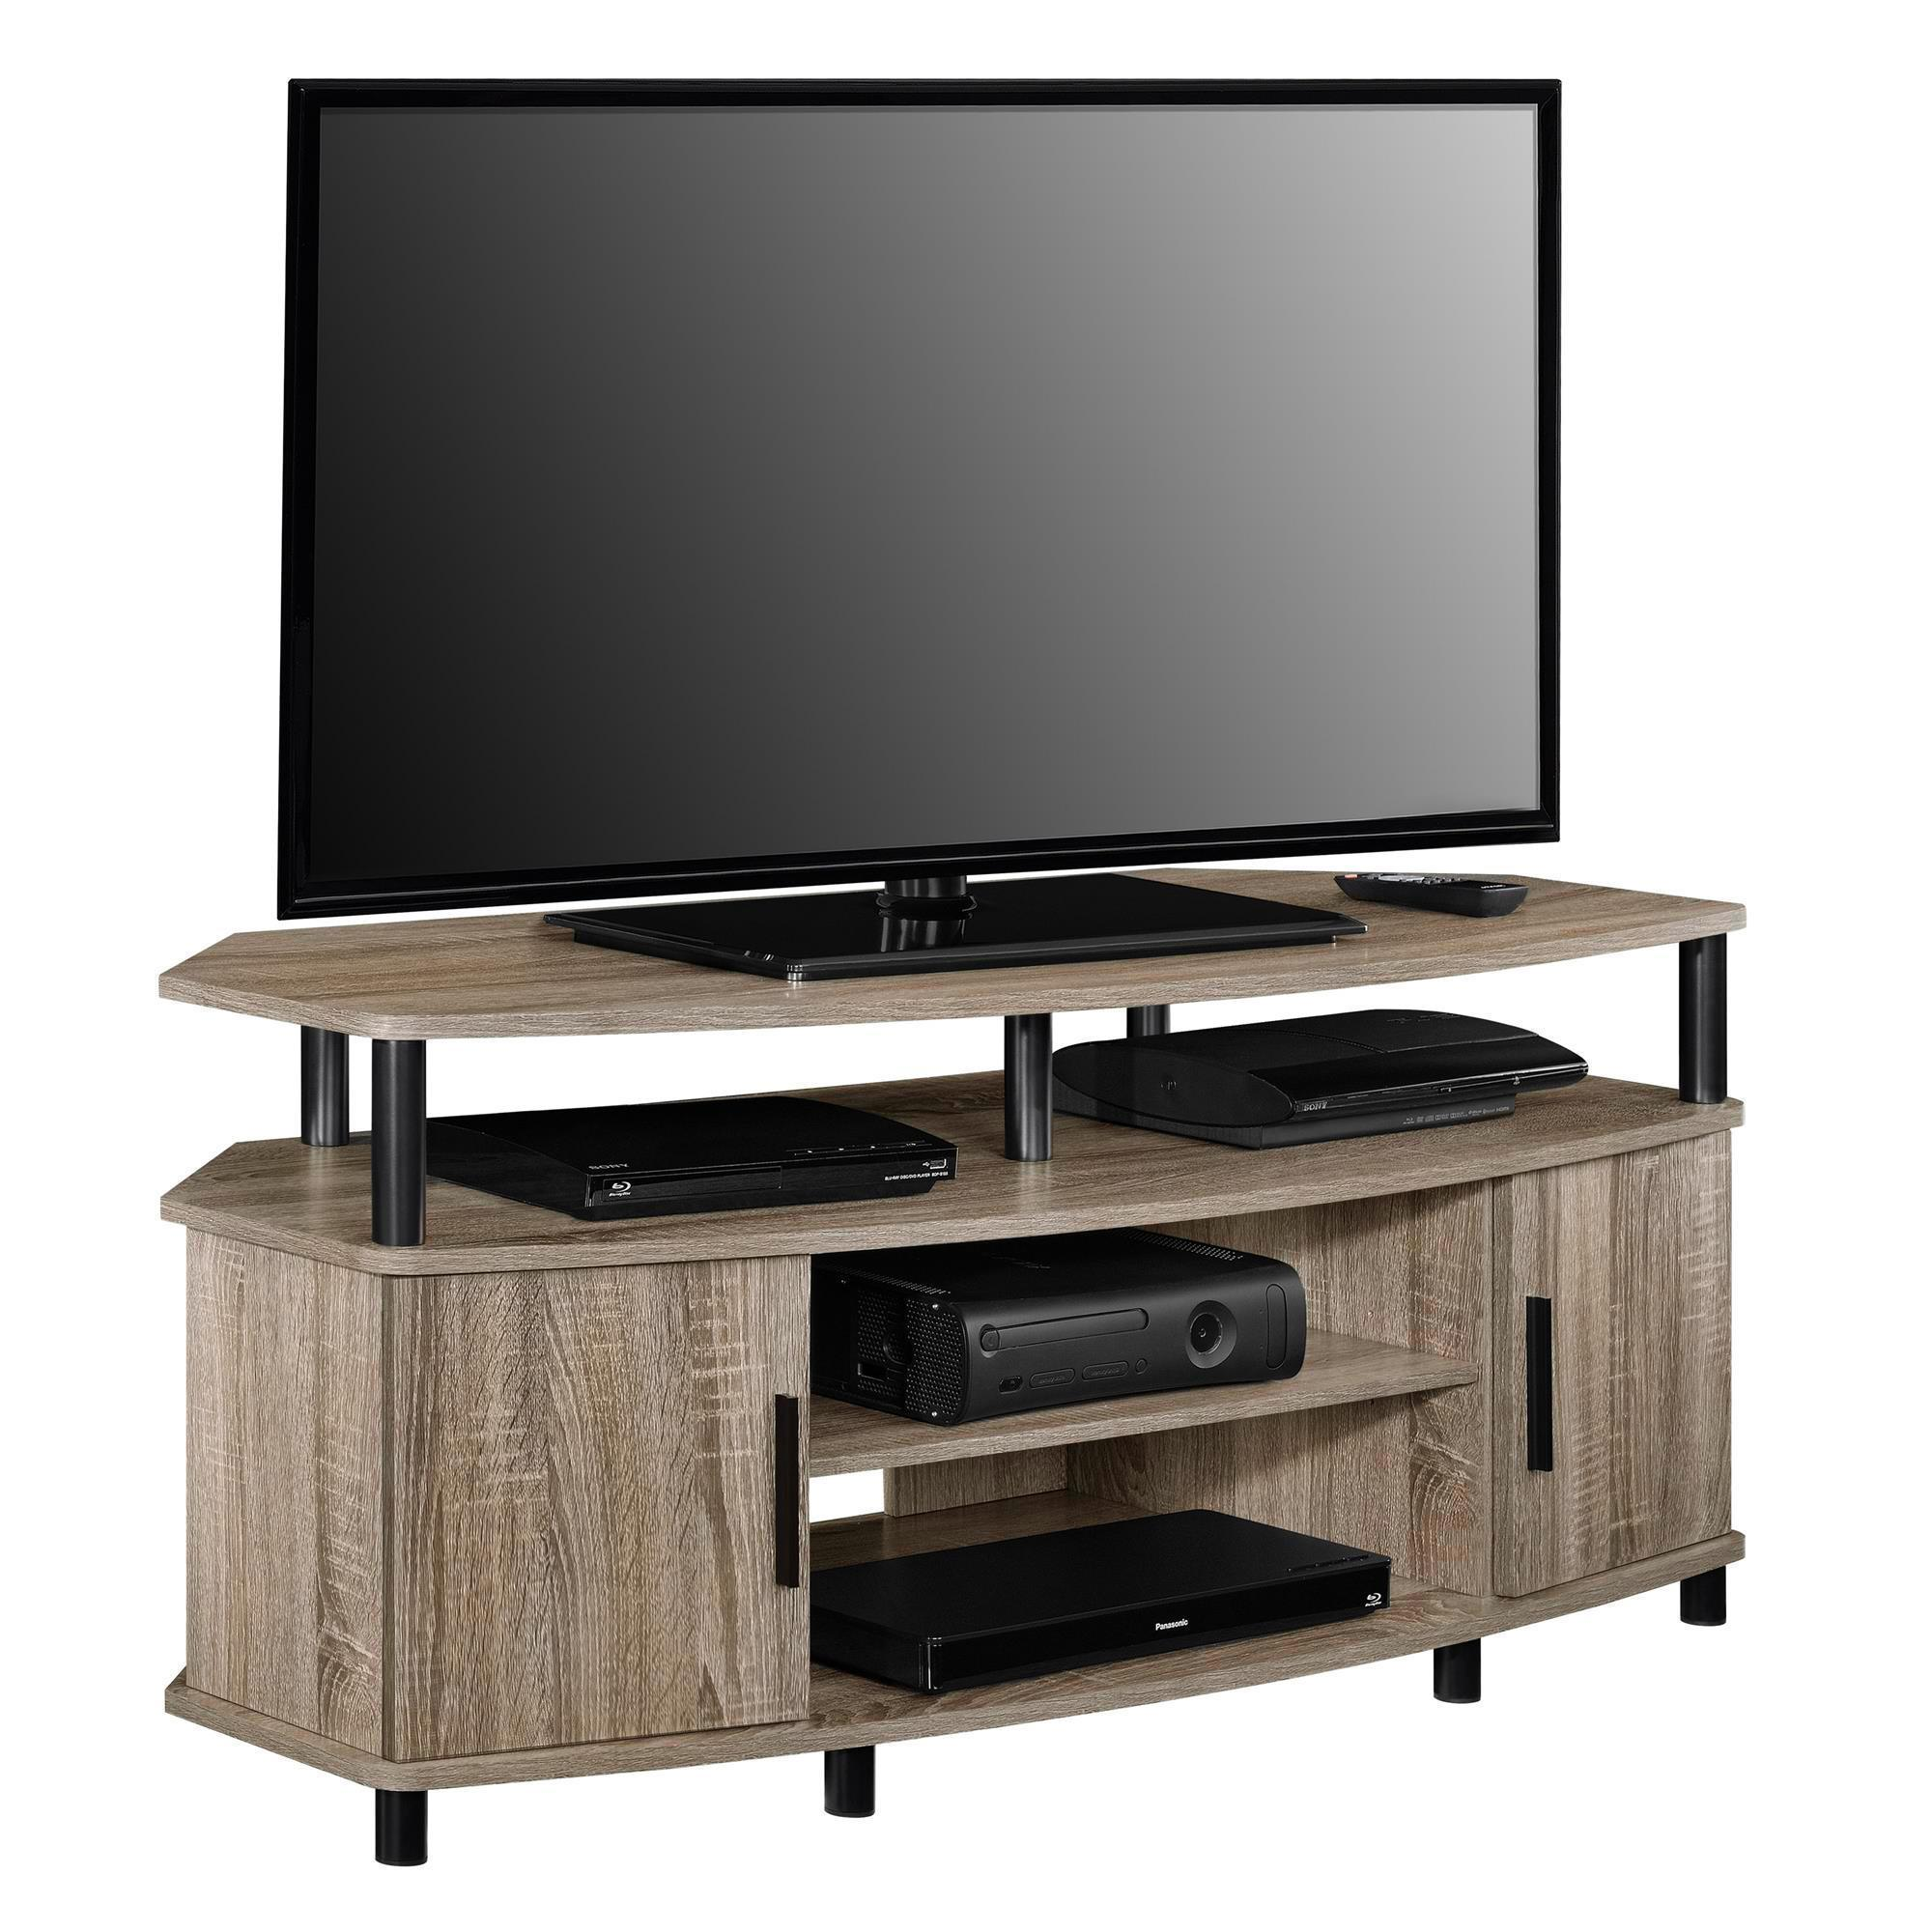 50 wood corner tv stand vintage entertainment media console center furniture ebay. Black Bedroom Furniture Sets. Home Design Ideas